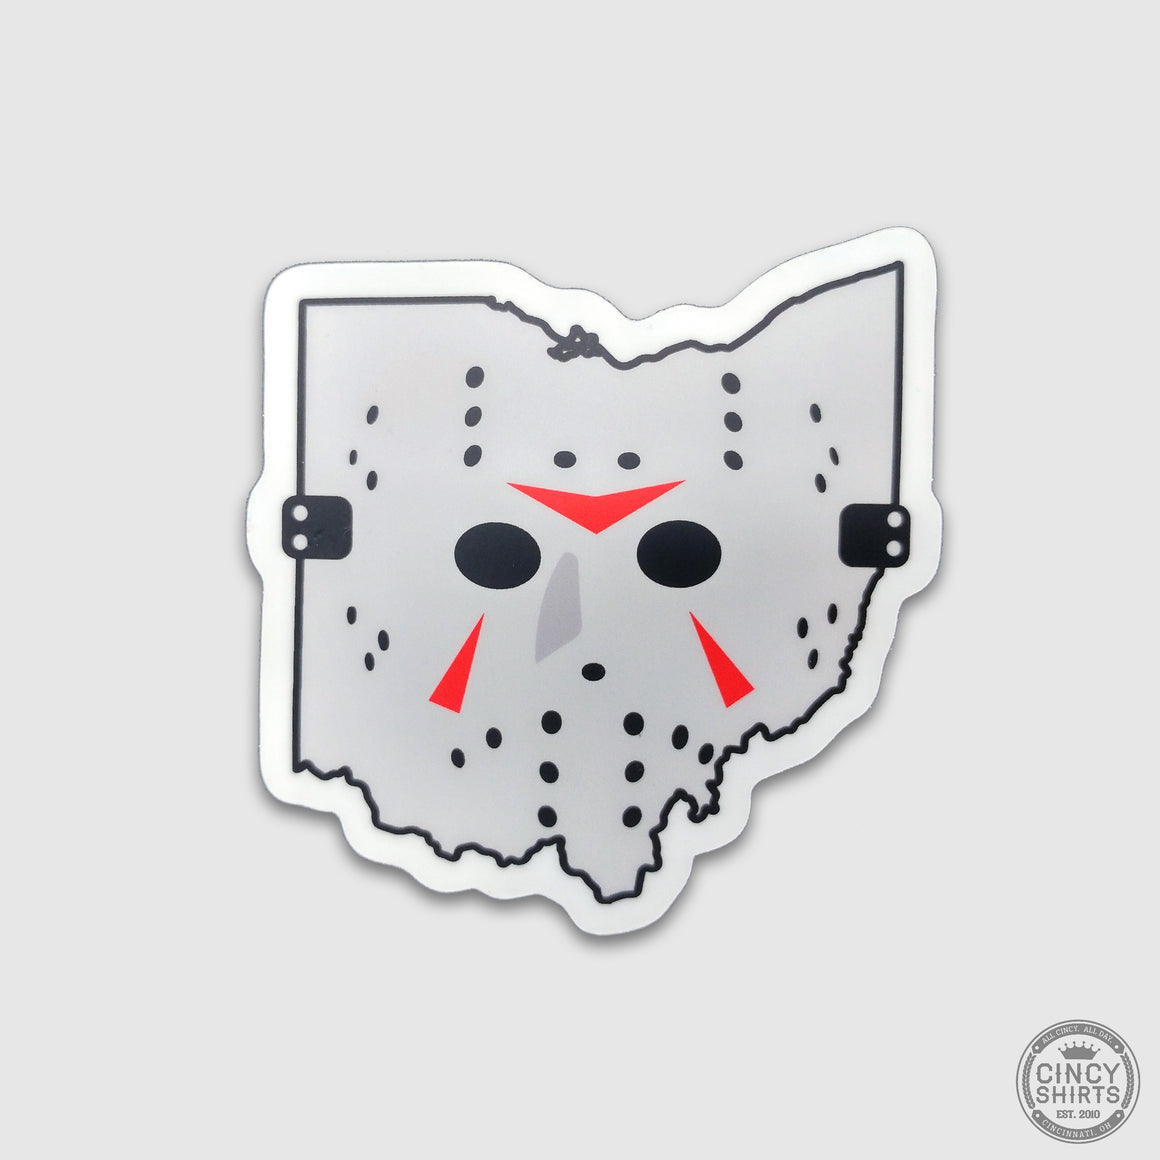 Camp Killer Ohio Sticker - Cincy Shirts